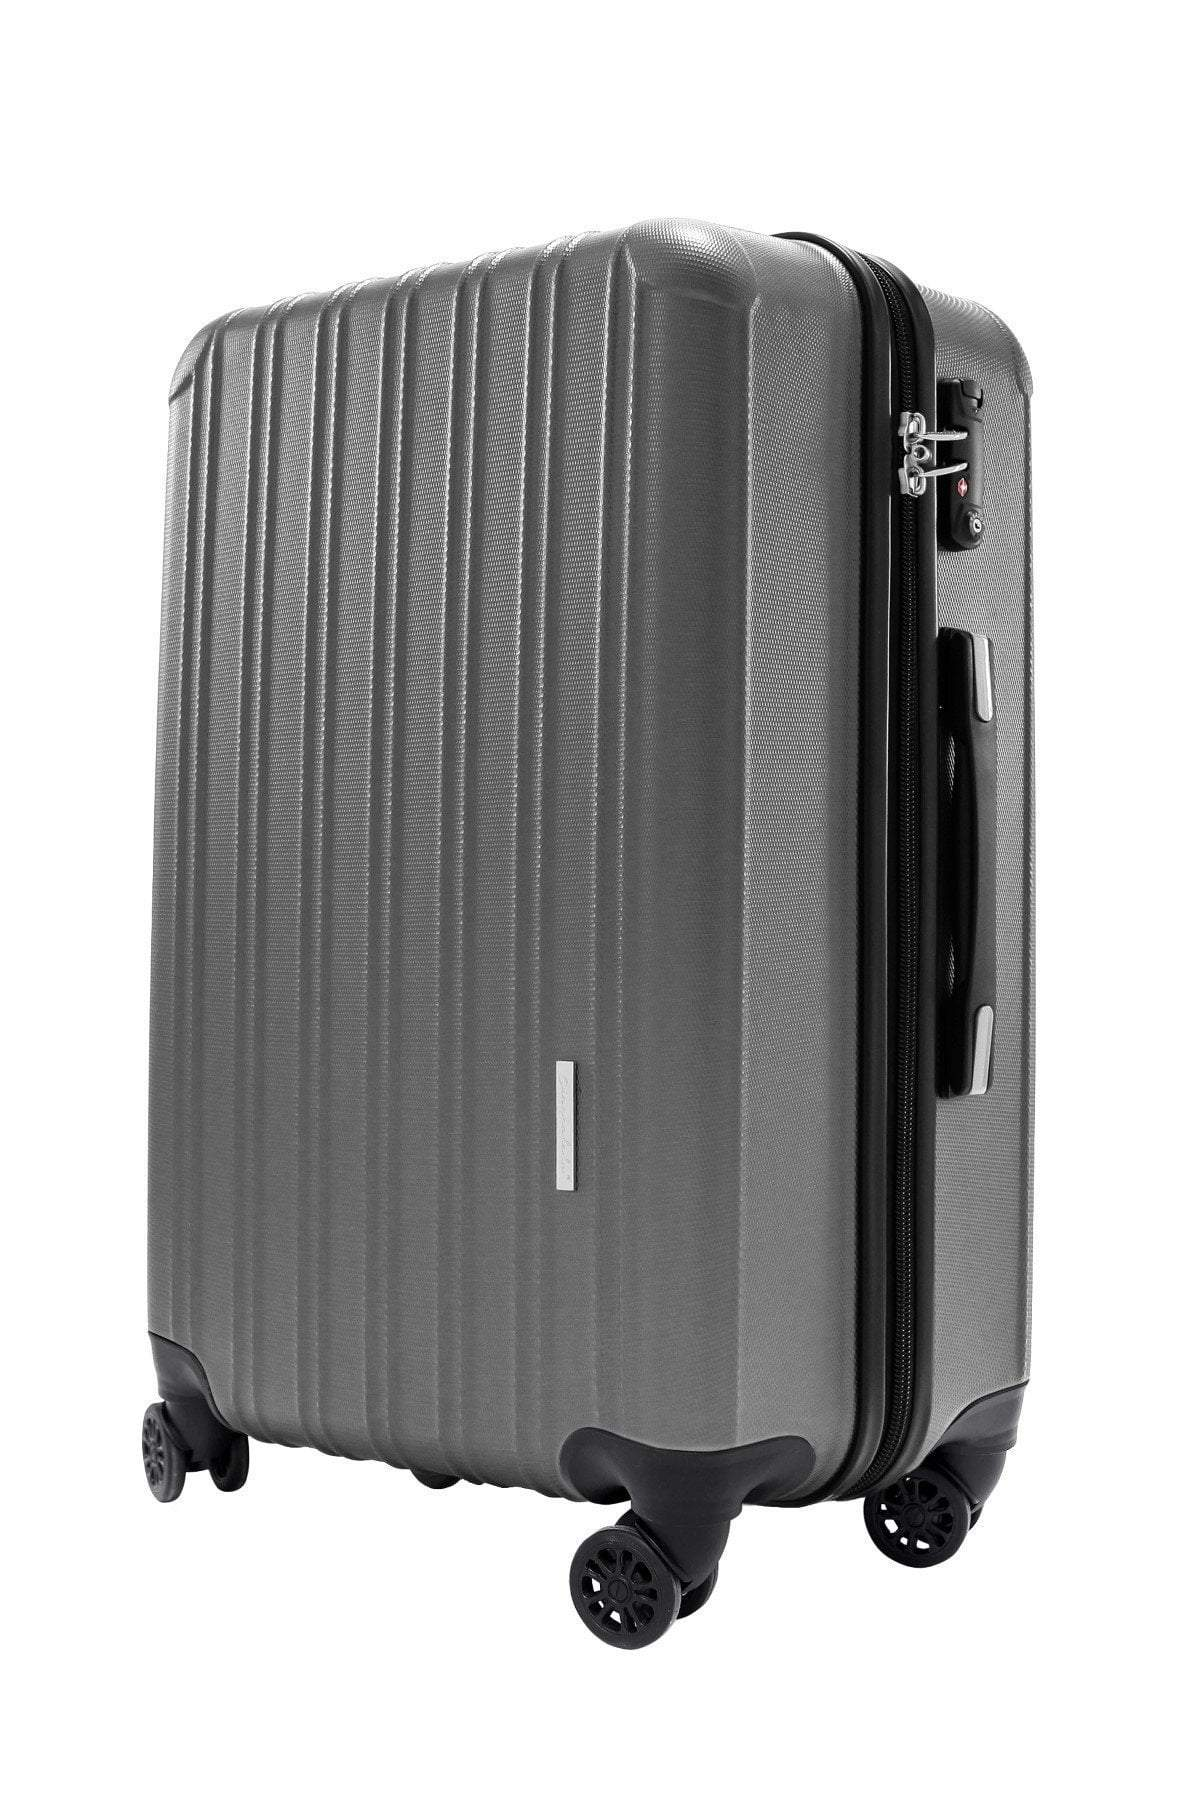 CIOCCOLATO Suitcase 20 / 55 cm / Matte Grey Platinum